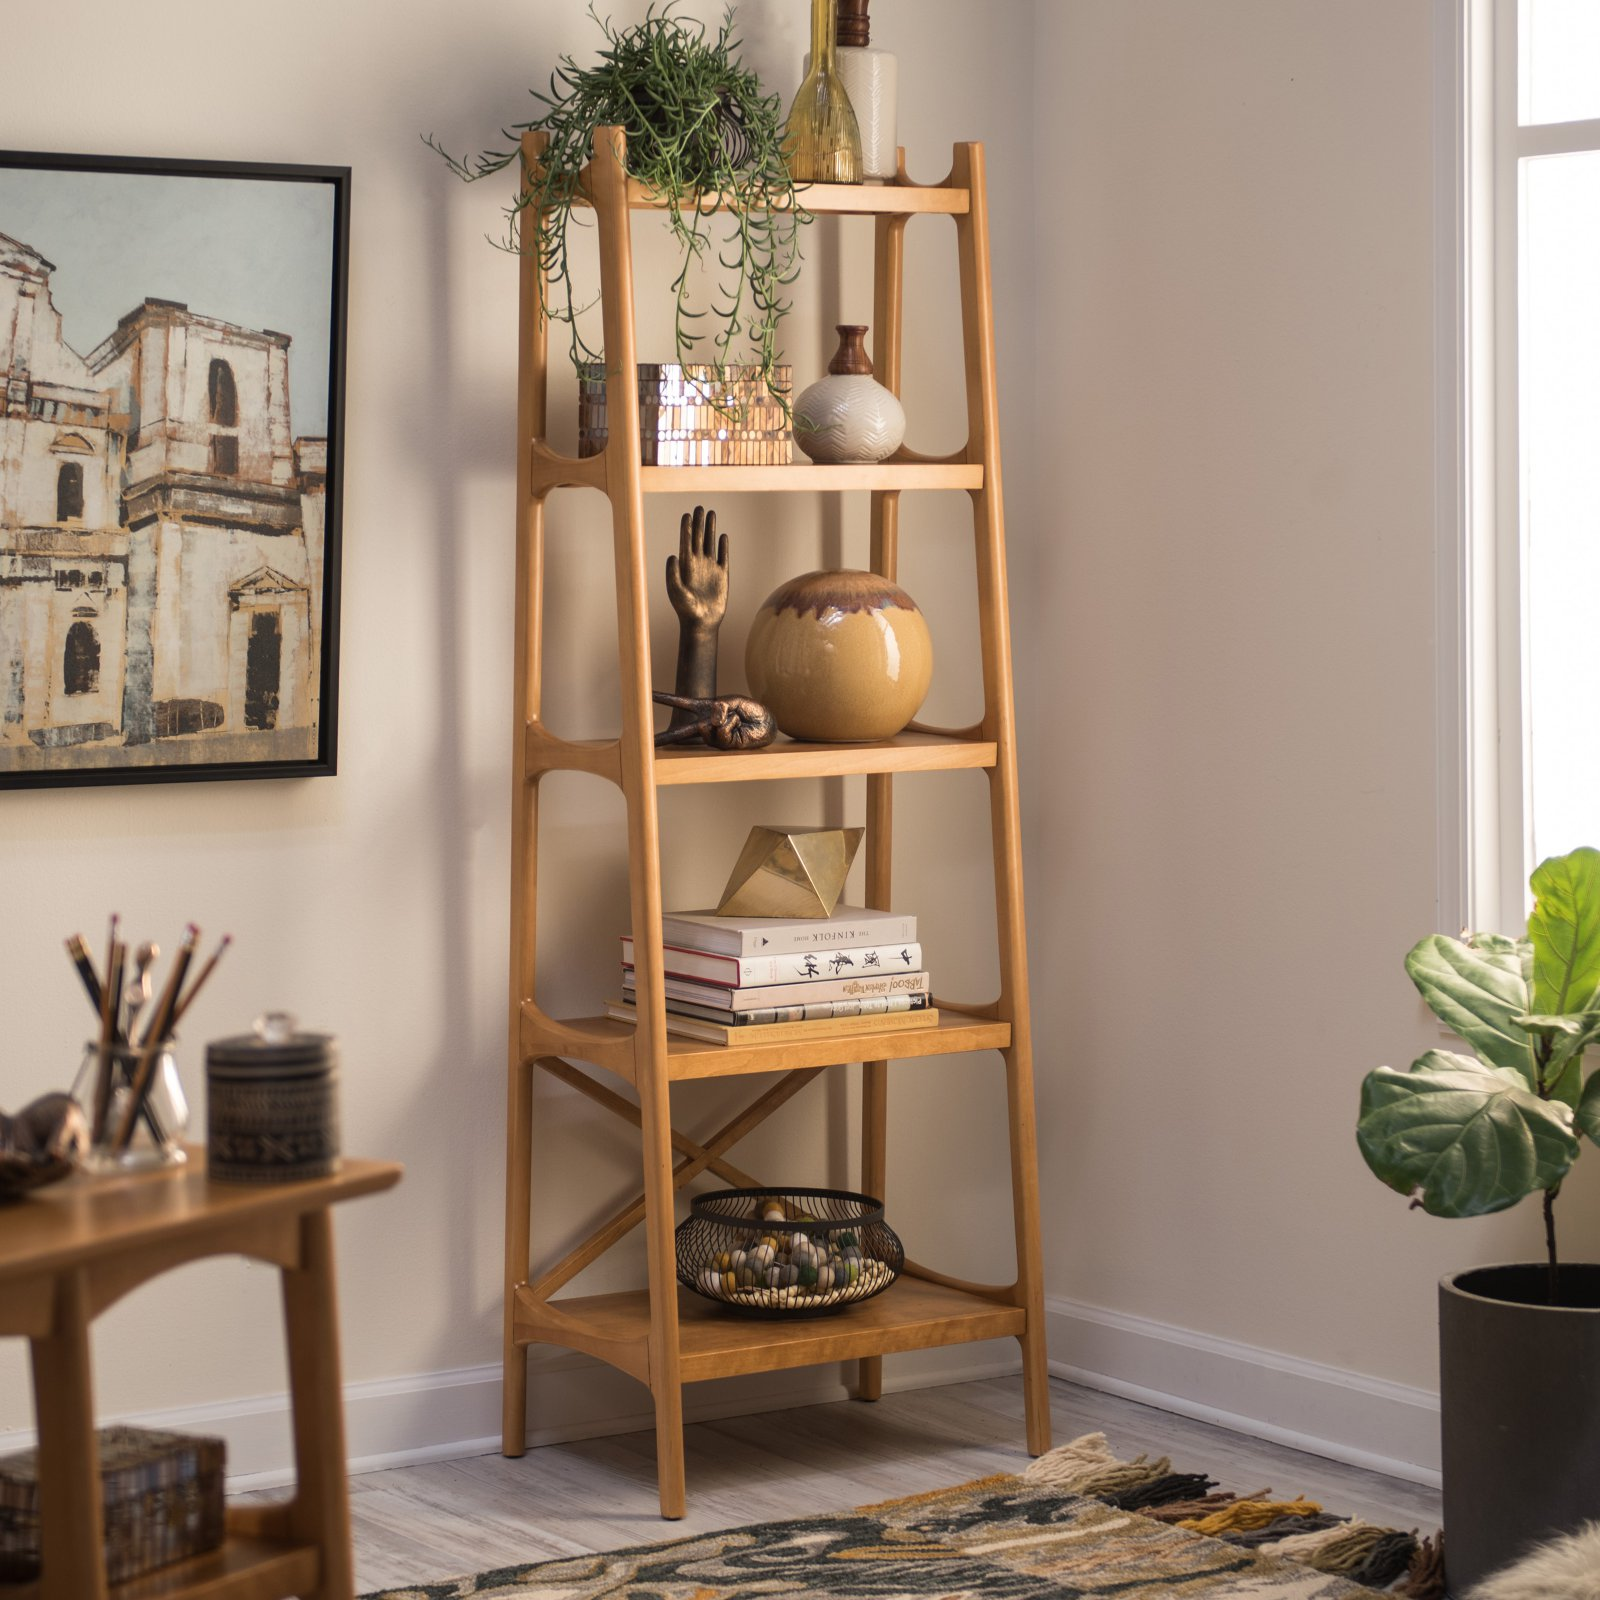 Details About Narrow Bookshelf Mid Century Bookcase Modern Display Tall Wood 5 Shelve Etagere